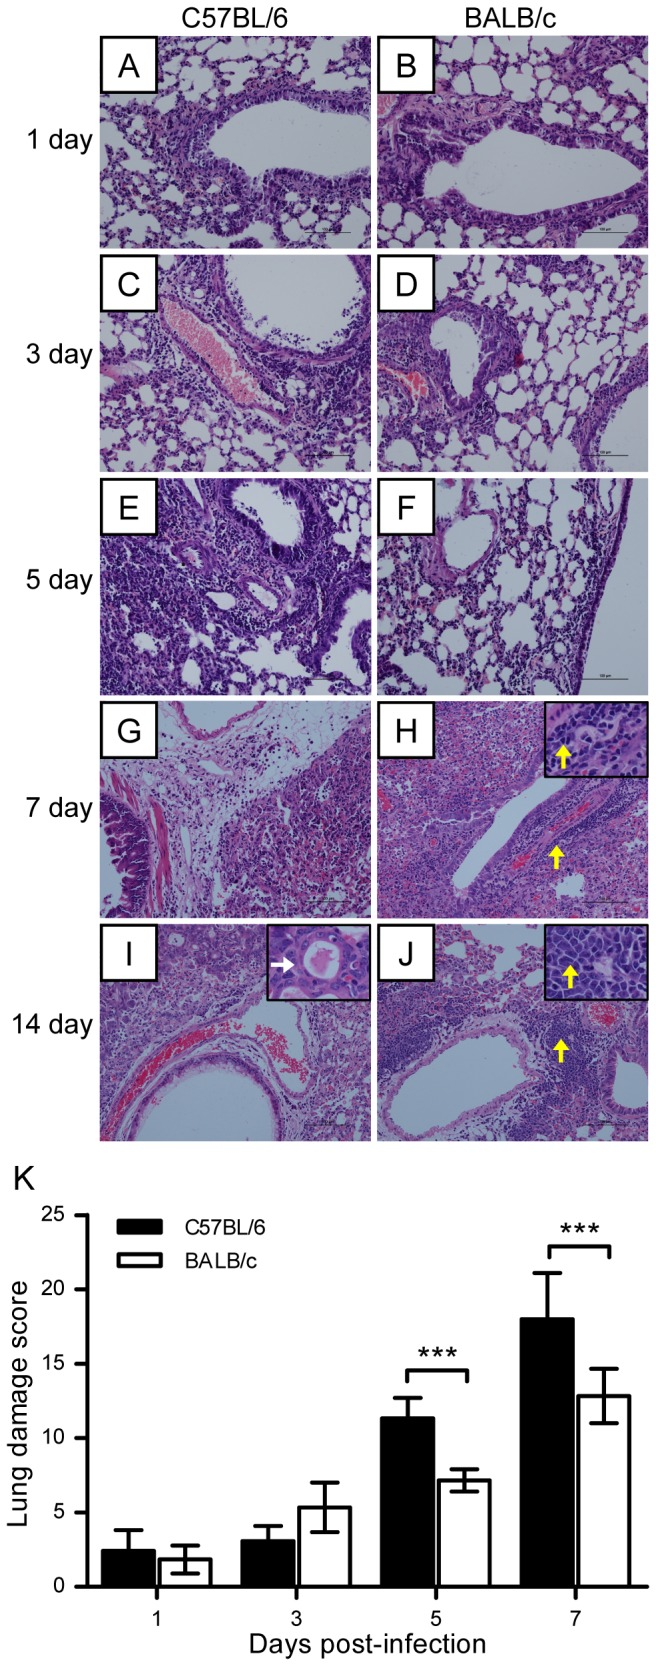 Lung injury in C57BL/6 and BALB/c mice following H7N9 virus infection. C57BL/6 and BALB/c mice were challenged intranasally with 10 6 TCID 50 of AH1/H7N9 virus and euthanized on days 0, 1, 3, 5, 7, and 14 after viral infection. (A–J) Histological changes in mouse lung tissues on days 0, 1, 3, 5, 7, and 14 postviral challenge. White and yellow arrows indicate the regeneration of pneumocytes and dissociation cells, respectively. (K) Semiquantitative assessments of lung lesions in mice on days 1, 3, 5, and 7 postviral infection ( n = 6). The data are expressed as the mean ± SD (bar). *, **, and *** indicate P